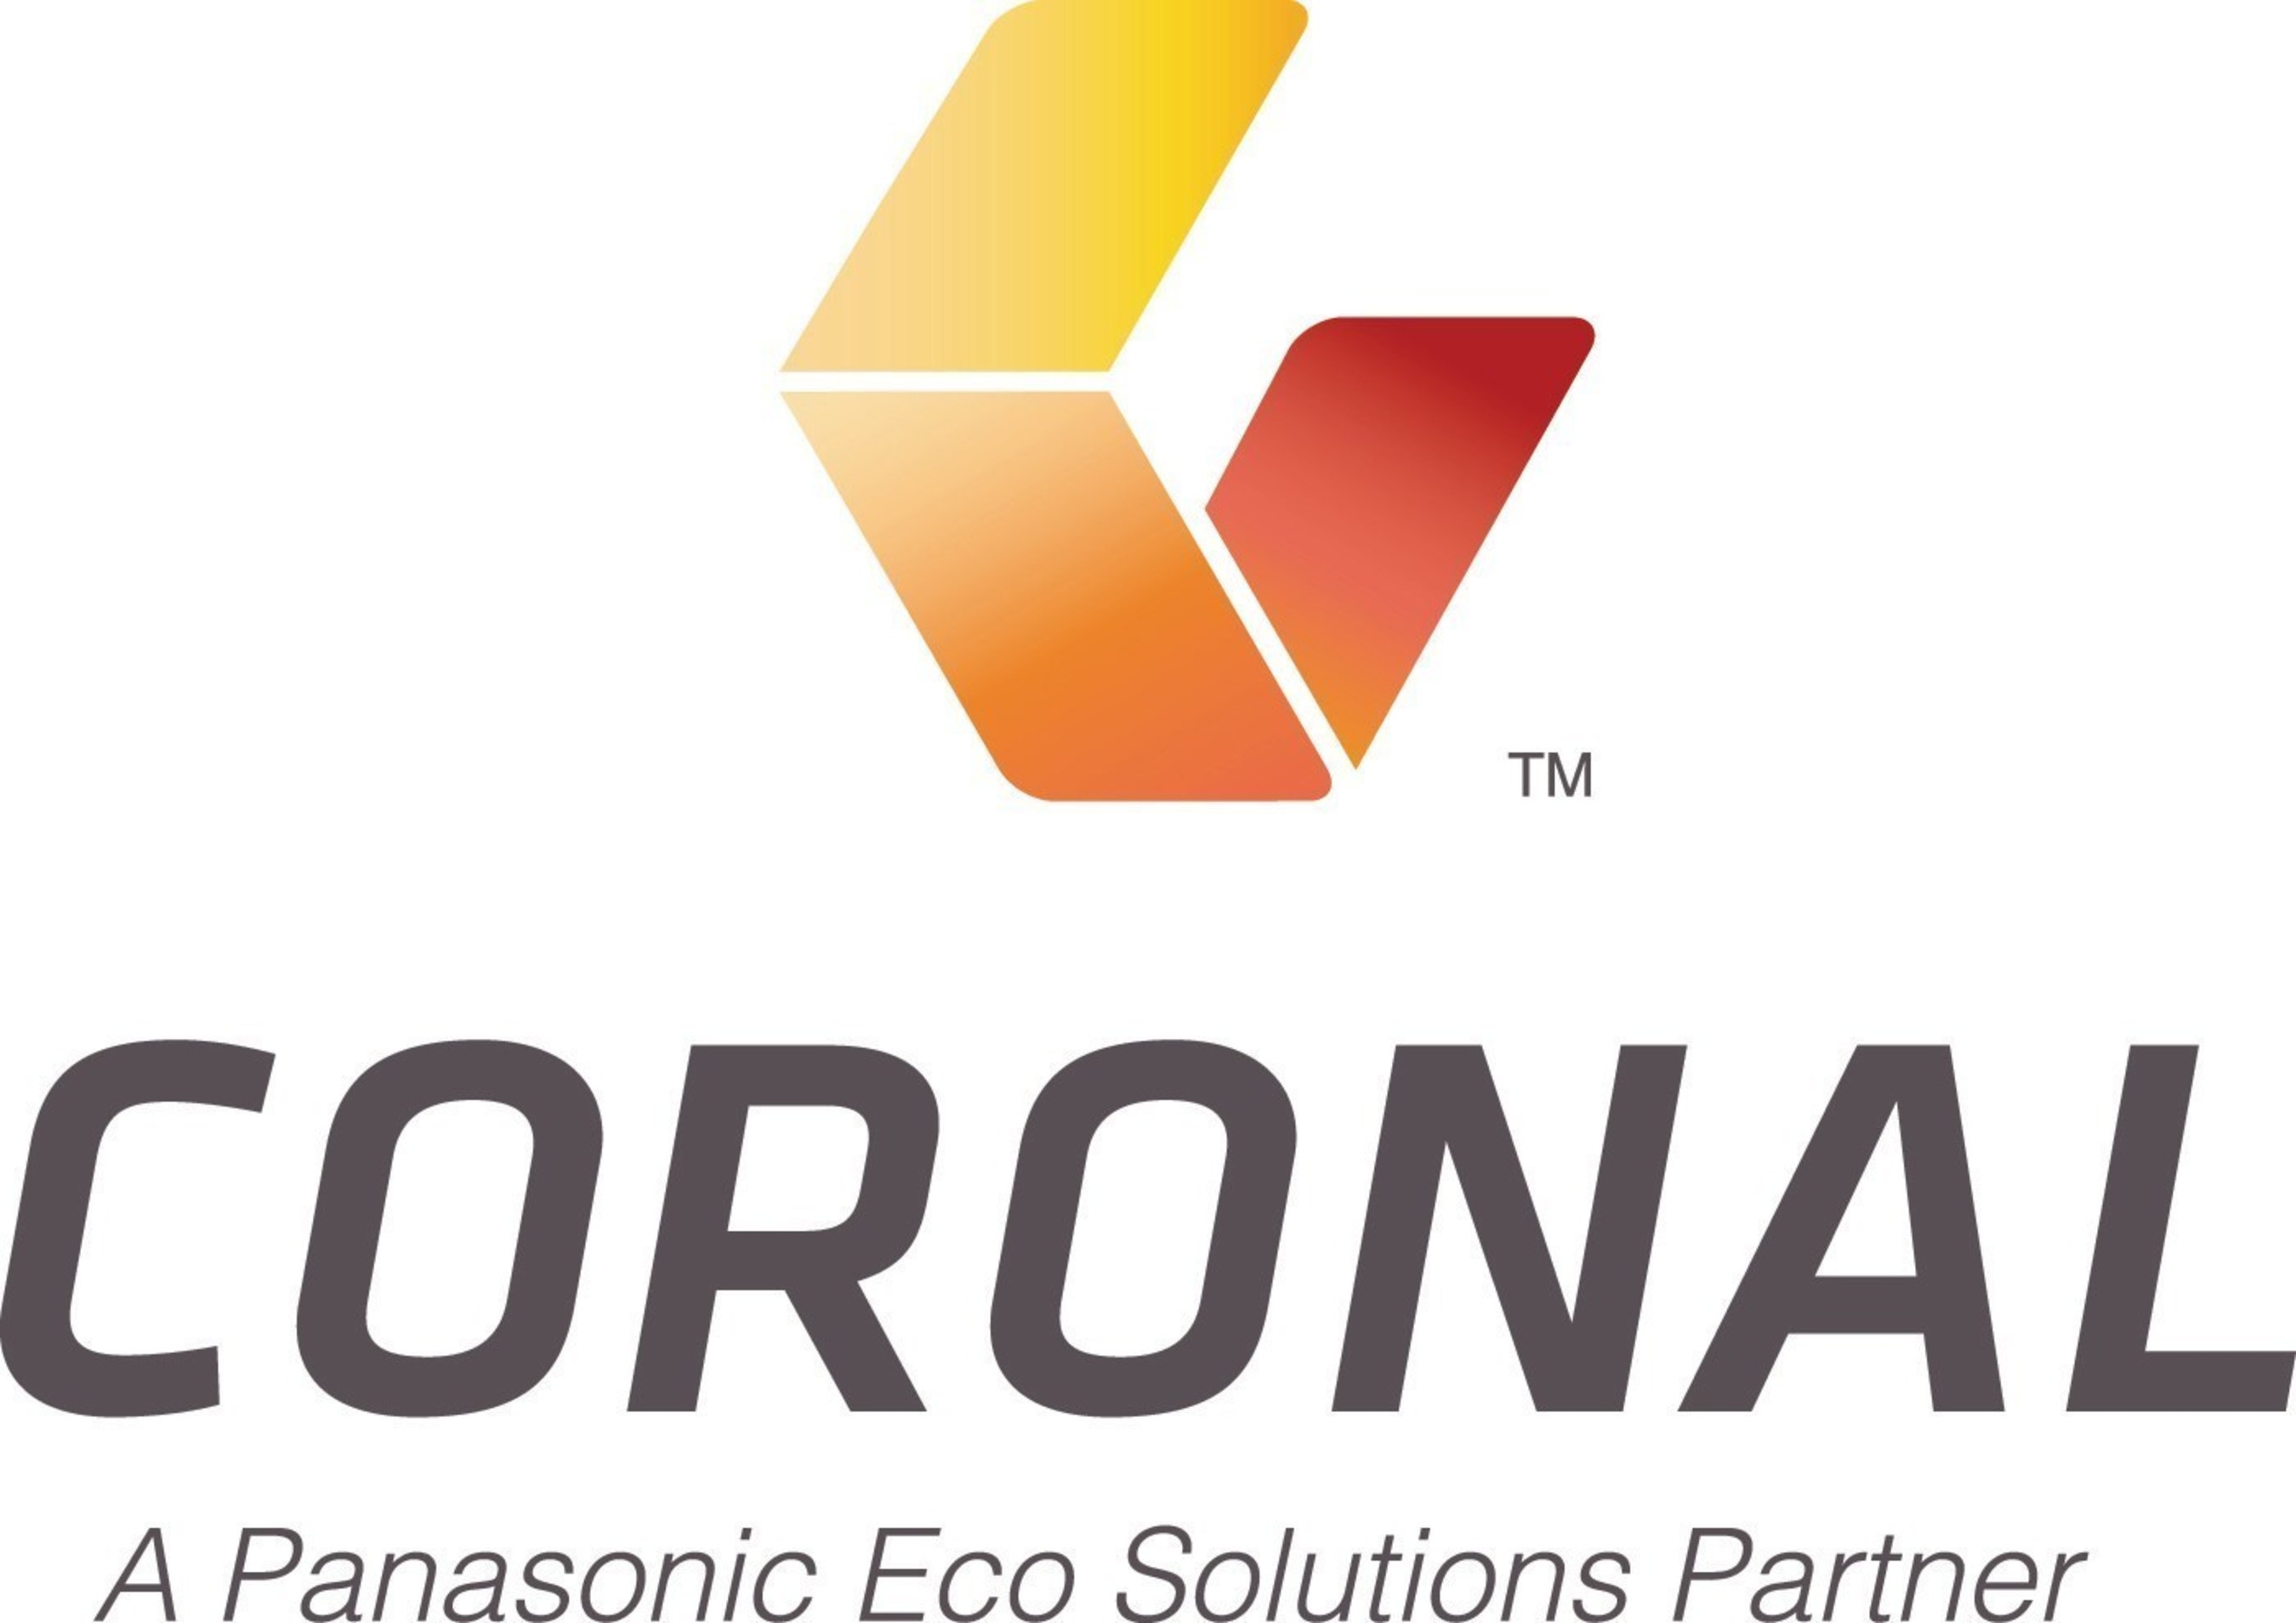 Coronal Group and Panasonic Make Strategic Investment in Blue Oak Energy to Support Continued Expansion of Blue Oak's Engineering and EPC Business